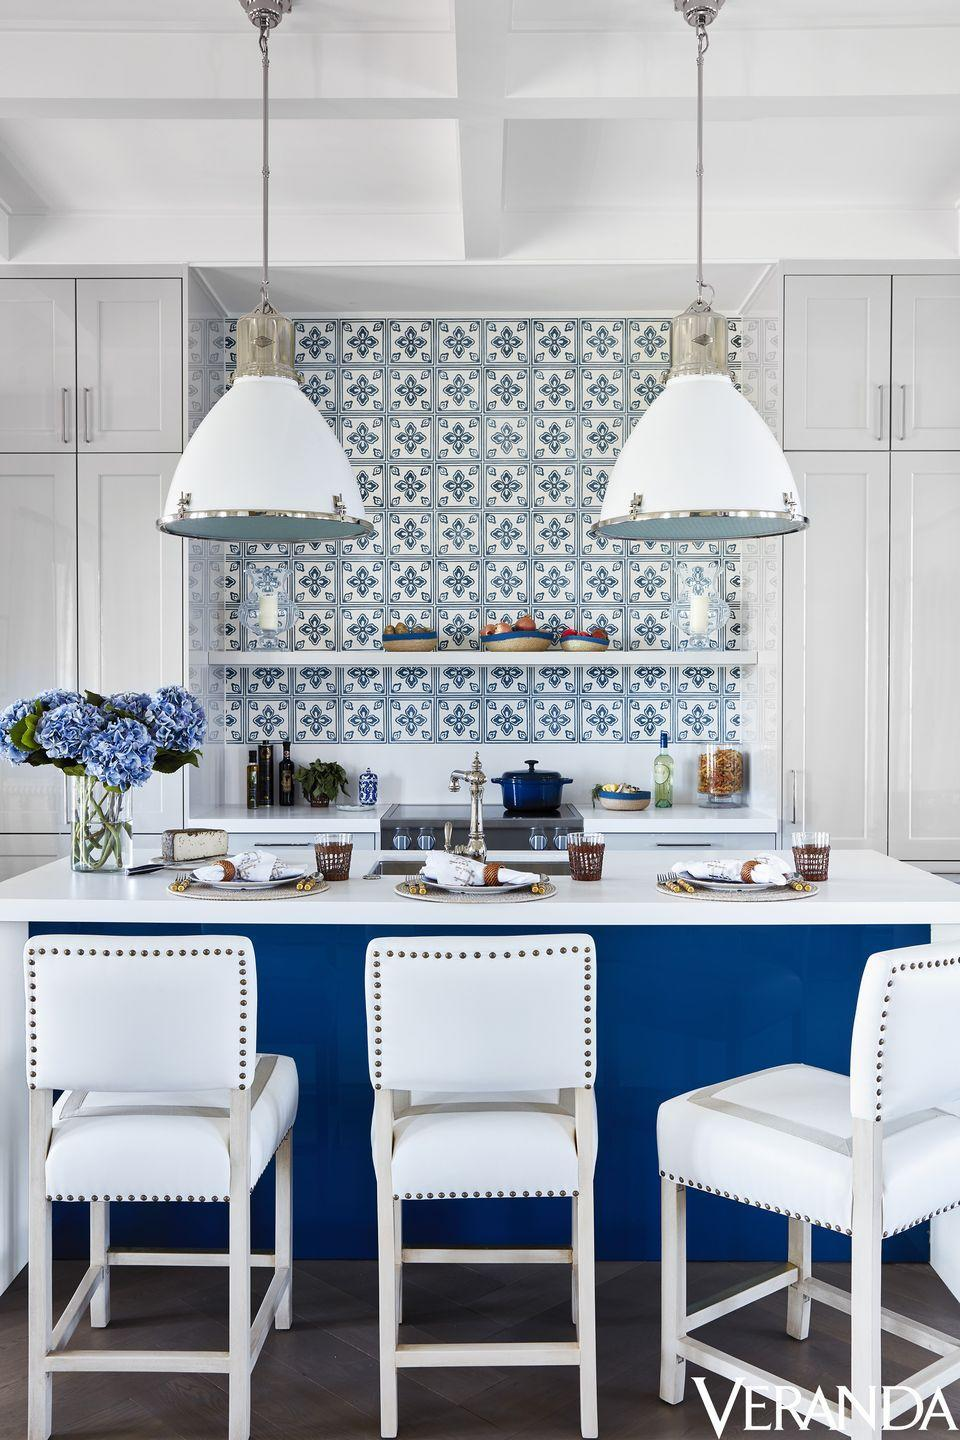 """<p>At this Windsor, Florida, cottage, designer Alessandra Branca packed a powerful style punch with the blue and white <a href=""""http://www.casablancatile.com/"""" rel=""""nofollow noopener"""" target=""""_blank"""" data-ylk=""""slk:Casa Branca"""" class=""""link rapid-noclick-resp"""">Casa Branca</a> tile backsplash, which stands in colorful contrast to a sleek, lacquered <a href=""""https://www.siematic.com/en/"""" rel=""""nofollow noopener"""" target=""""_blank"""" data-ylk=""""slk:SieMatic"""" class=""""link rapid-noclick-resp"""">SieMatic</a> island. The <a href=""""http://www.palecek.com/"""" rel=""""nofollow noopener"""" target=""""_blank"""" data-ylk=""""slk:Palecek"""" class=""""link rapid-noclick-resp"""">Palecek</a> stools are covered in a <a href=""""https://www.kravet.com/"""" rel=""""nofollow noopener"""" target=""""_blank"""" data-ylk=""""slk:Kravet"""" class=""""link rapid-noclick-resp"""">Kravet</a> fabric with <a href=""""https://samuelandsons.com/"""" rel=""""nofollow noopener"""" target=""""_blank"""" data-ylk=""""slk:Samuel & Sons"""" class=""""link rapid-noclick-resp"""">Samuel & Sons</a> trim. Fittings, <a href=""""https://go.redirectingat.com/?id=74968X1525088&xs=1&url=http%3A%2F%2Fwww.kohler.com%2Fcorporate%2Findex.html&sref=https%3A%2F%2Fwww.veranda.com%2Fdecorating-ideas%2Fa19833976%2Falessandra-branca-windsor-florida-village-suites%2F&xcust=%5Butm_source%7C%5Butm_campaign%7C%5Butm_medium%7C%5Bgclid%7C%5Bmsclkid%7C%5Bfbclid%7C%5Brefdomain%7Cgoogle.com%5Bcontent_id%7Cbe0949c9-1e96-4ab0-a1a4-e2ed88e68ef4%5Bcontent_product_id%7C%5Bproduct_retailer_id%7C"""" rel=""""nofollow noopener"""" target=""""_blank"""" data-ylk=""""slk:Kohler"""" class=""""link rapid-noclick-resp"""">Kohler</a>. Pendants, <a href=""""https://www.circalighting.com/"""" rel=""""nofollow noopener"""" target=""""_blank"""" data-ylk=""""slk:Circa Lighting"""" class=""""link rapid-noclick-resp"""">Circa Lighting</a>.</p>"""